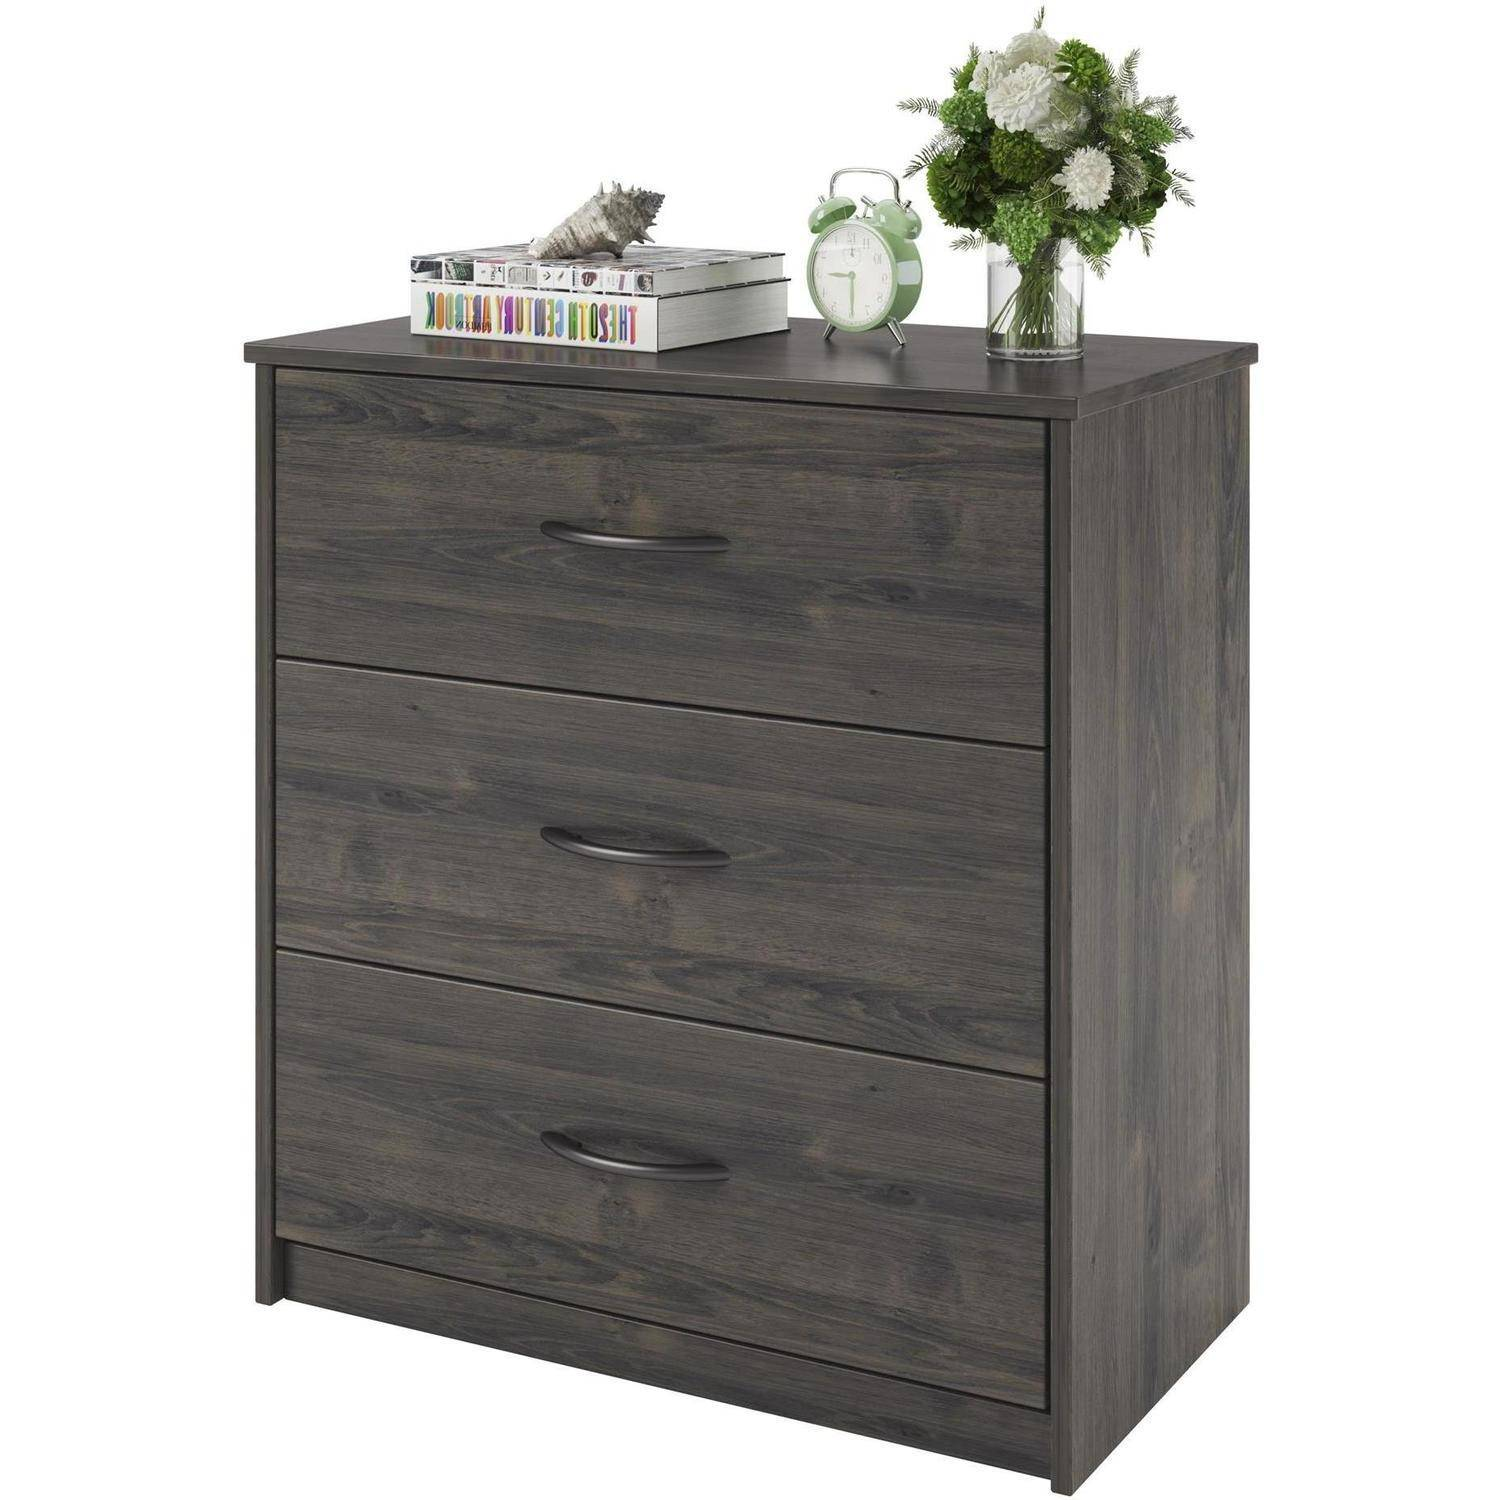 modern bedroom dresser 3 drawer dresser chest bedroom furniture black brown white 12479